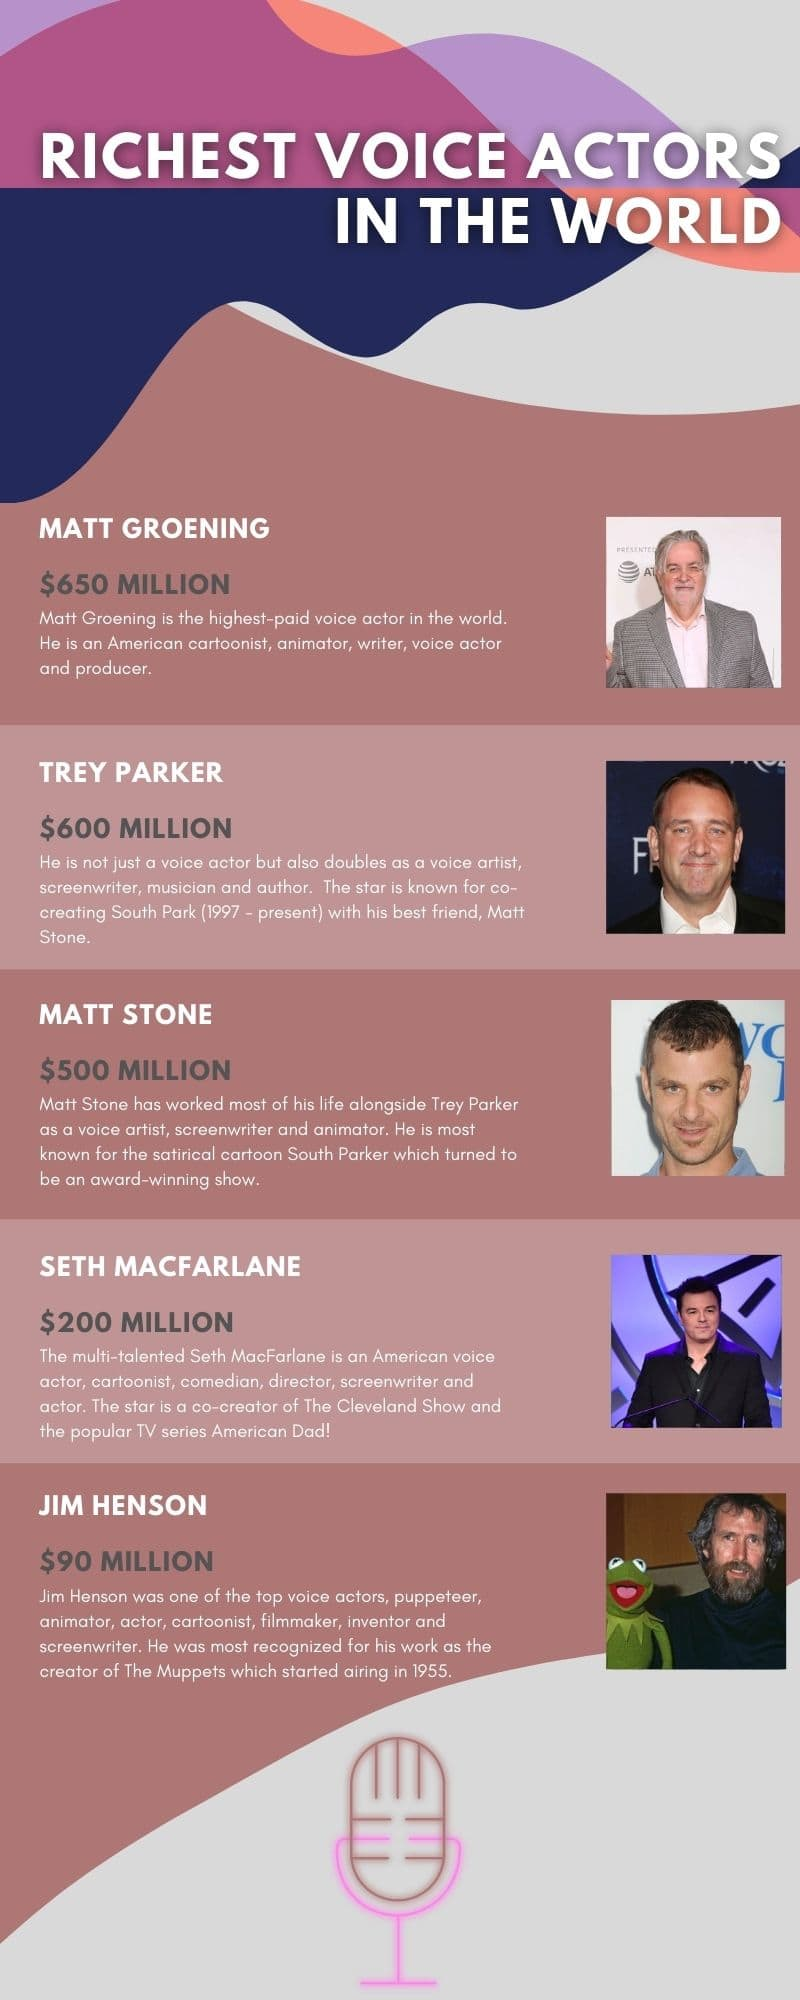 10 richest voice actors in the world in 2020